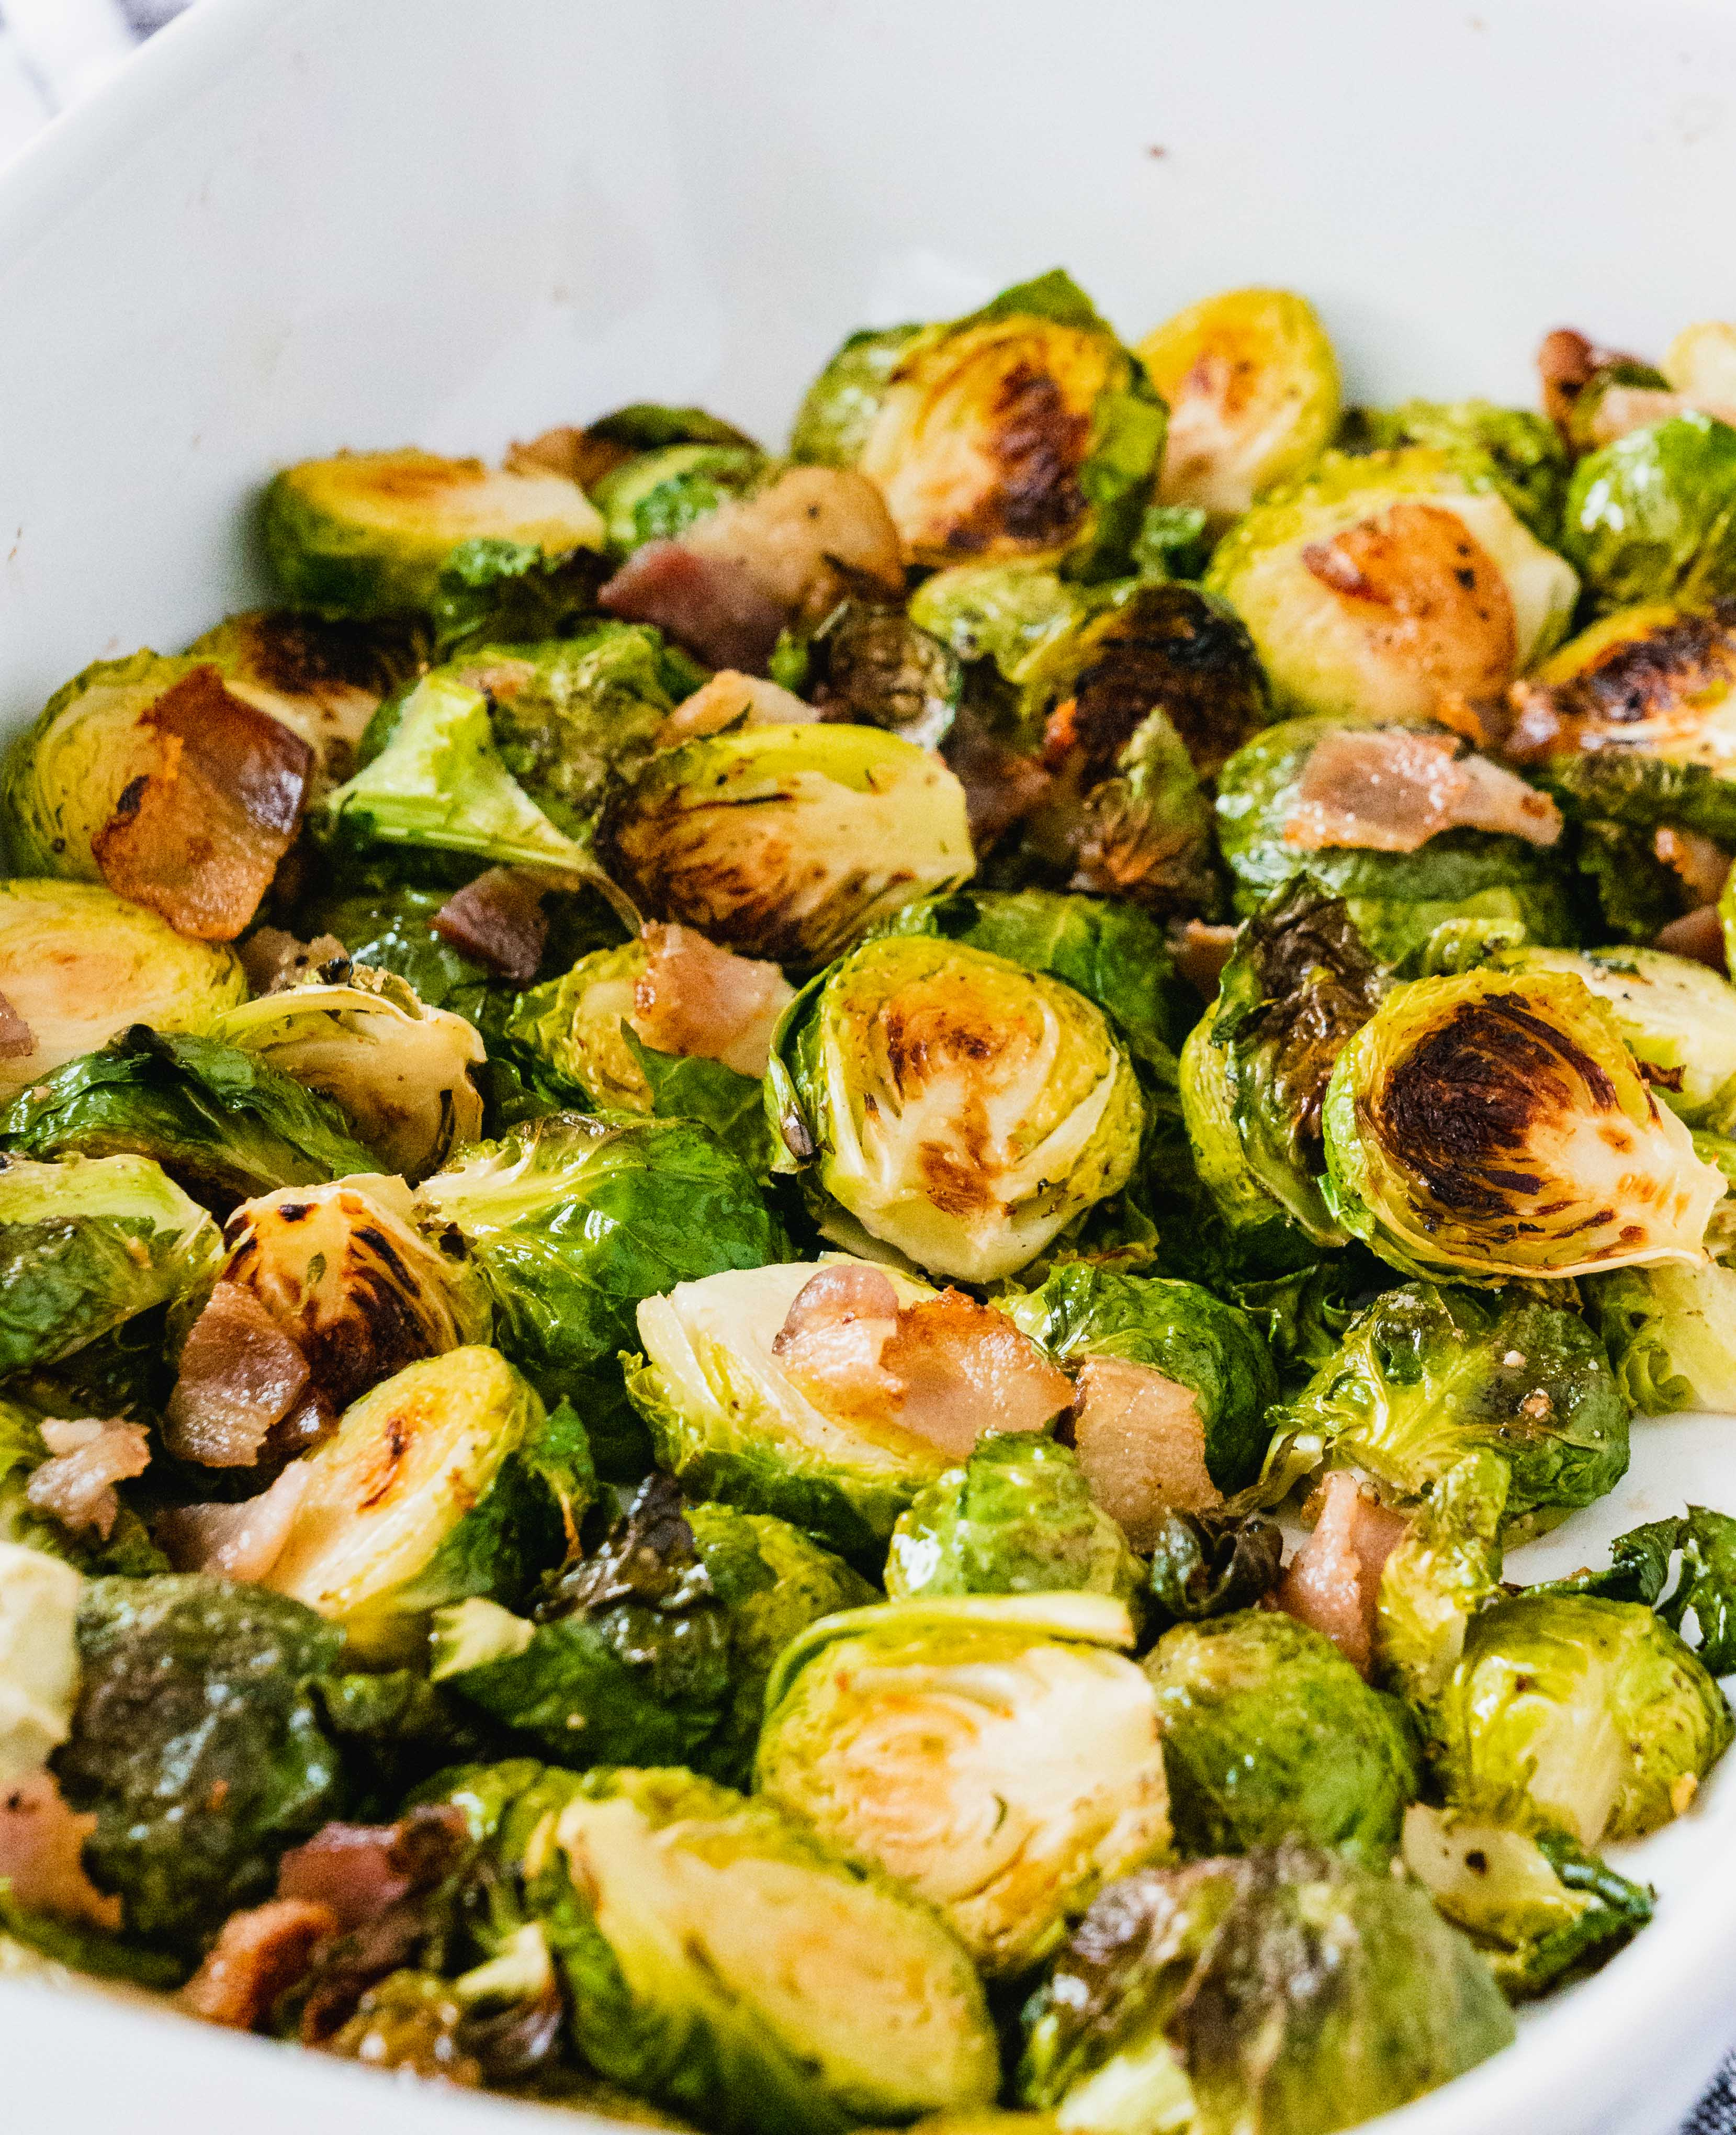 Oven baked Crispy Bacon Brussel Sprouts | These oven roasted crispy bacon brussels sprouts are so delicious and flavorful. They are also incredibly easy to make under 20 minutes. Even better? This healthy recipe is paleo and whole 30 compliant. Perfect Thanksgiving or Christmas Side dish that are tasty and healthy. | #thanksgiving #brusselsprouts #bacon #whole30 #paleo #lowcarb #glutenfree #healthyrecipe